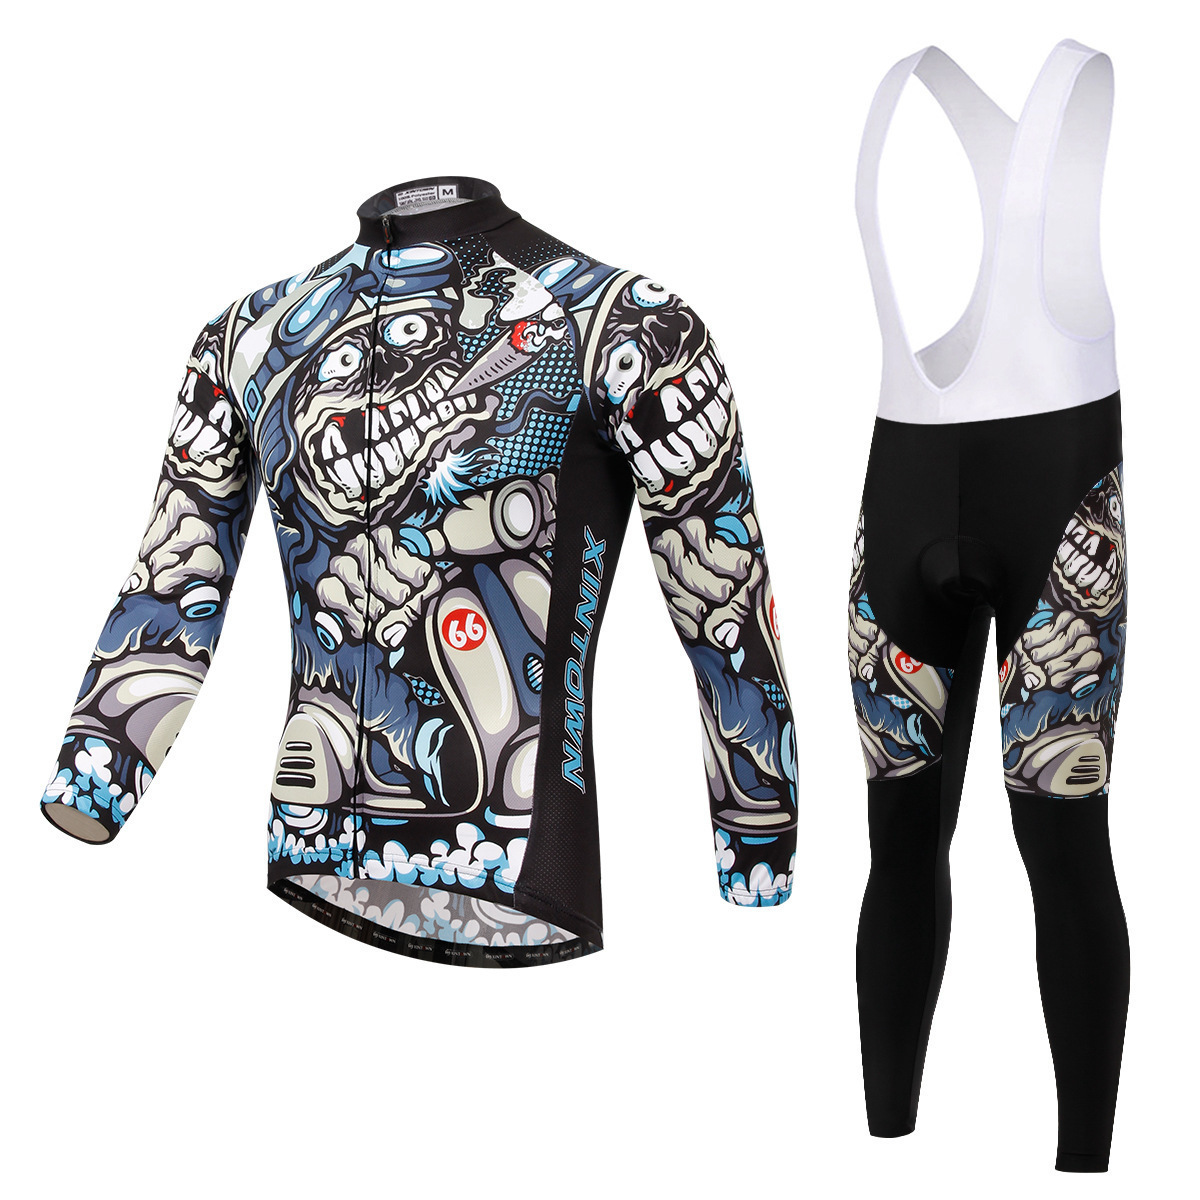 BOODUN Charge Riding Clothes Straps Long Sleeve Suit Bicycle Serve Catch Down Windbreak Keep Warm Function Underwear